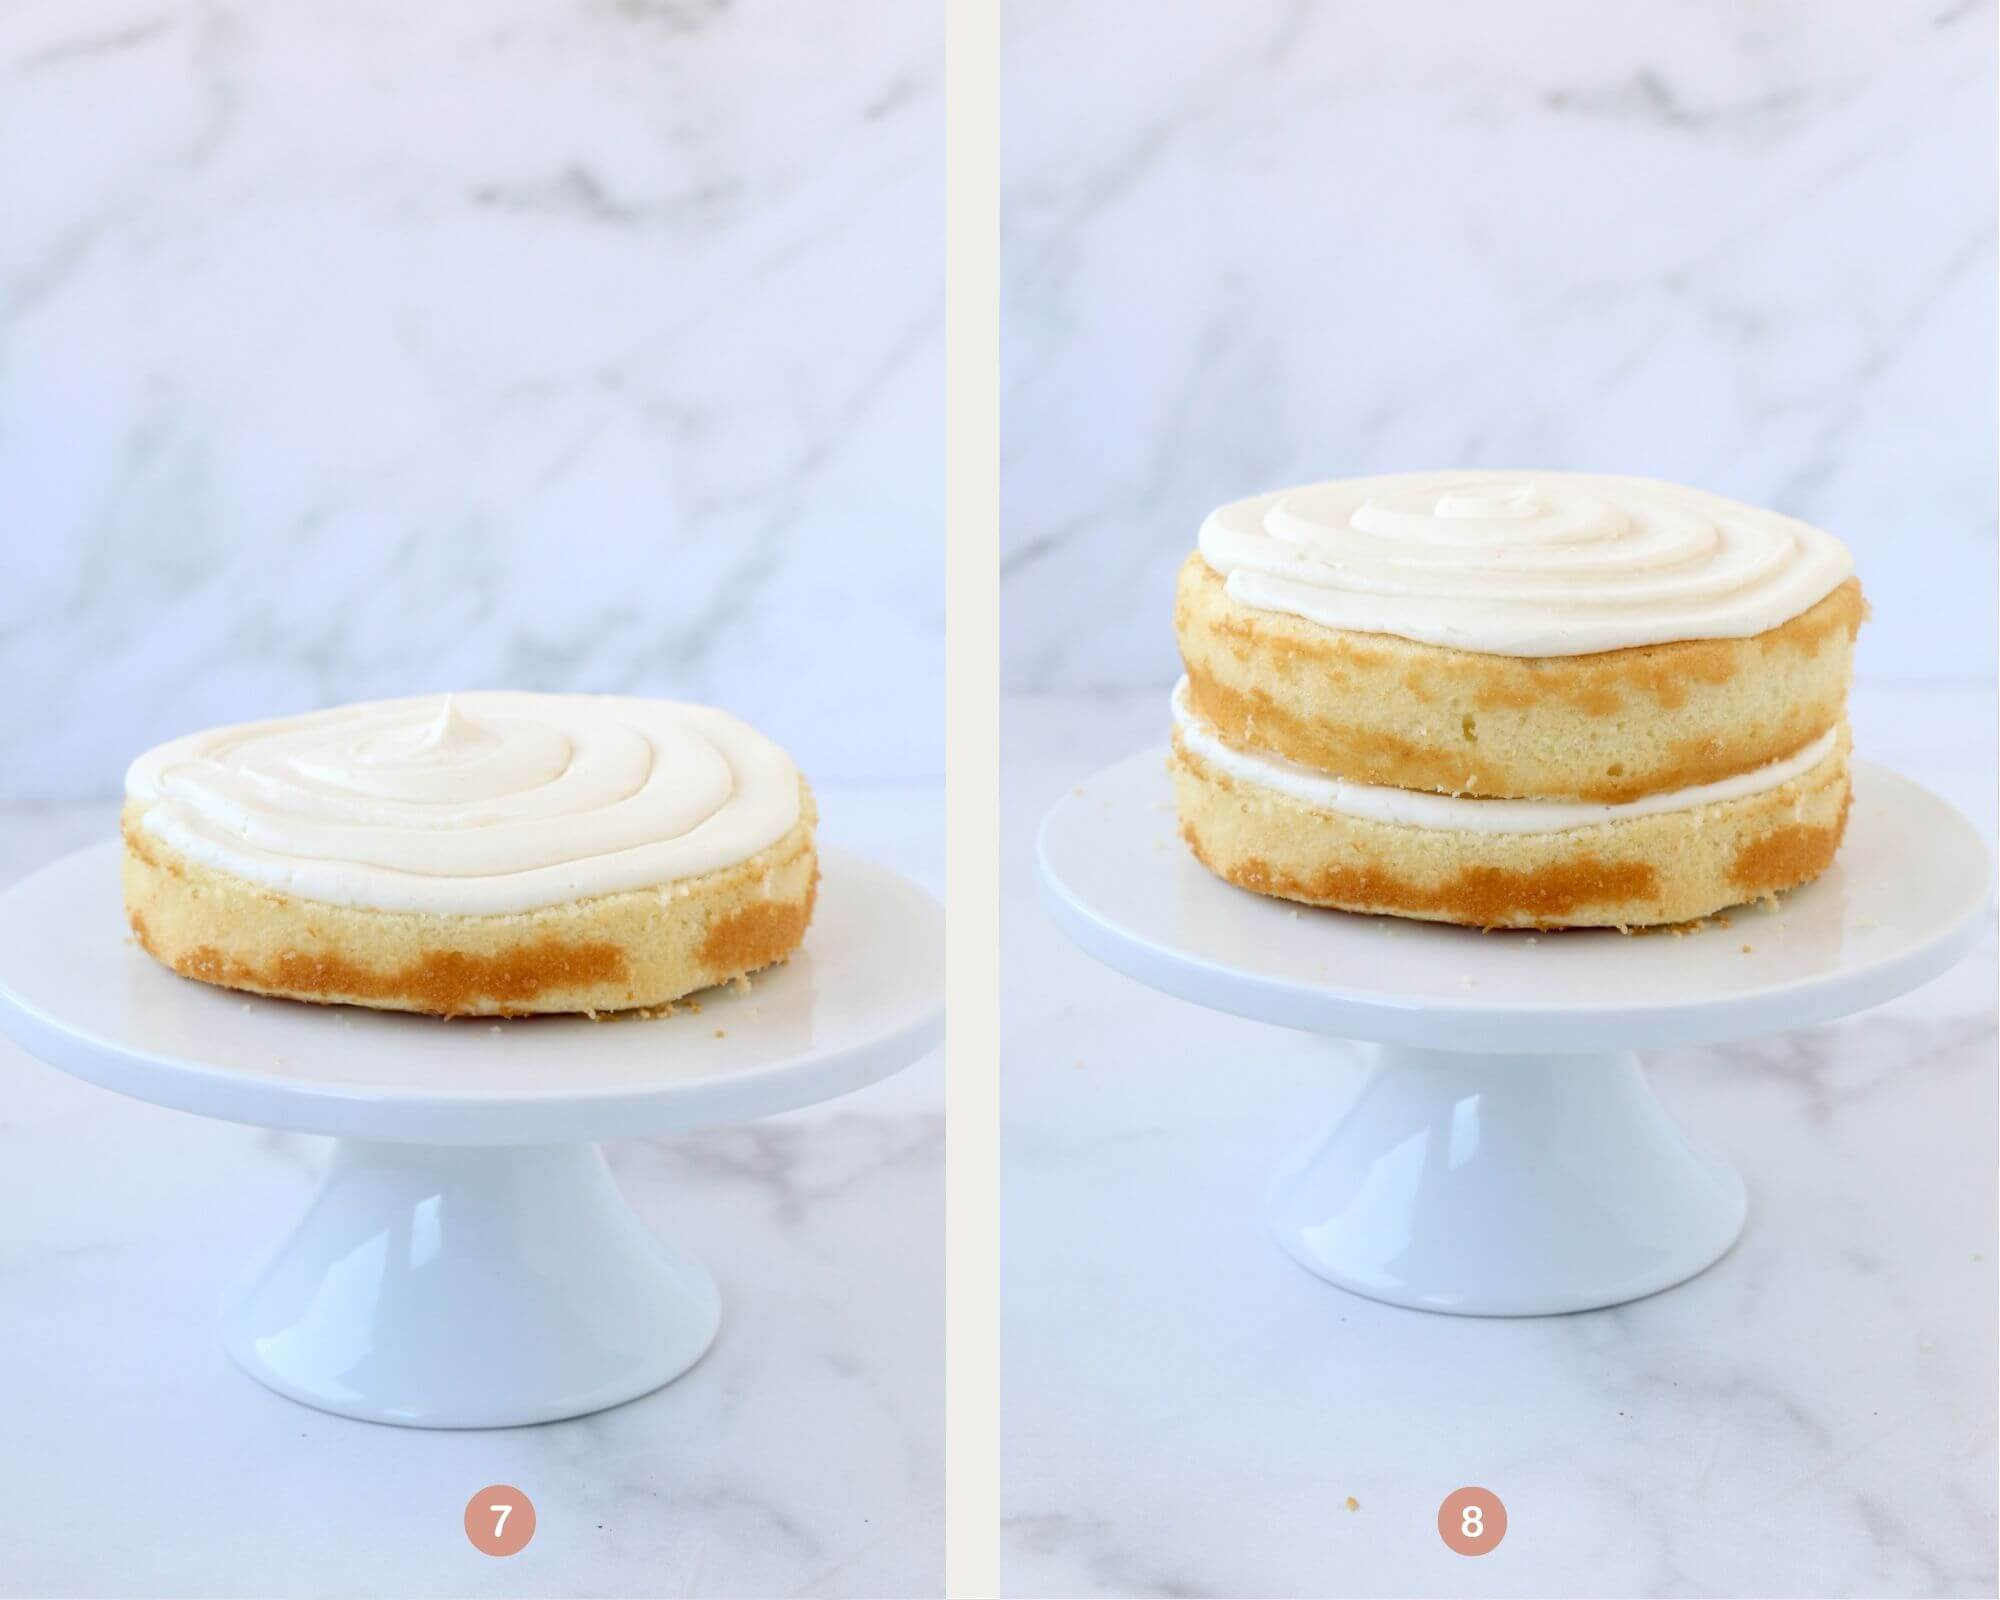 one cake layer with frosting next to two cake layers with frosting.